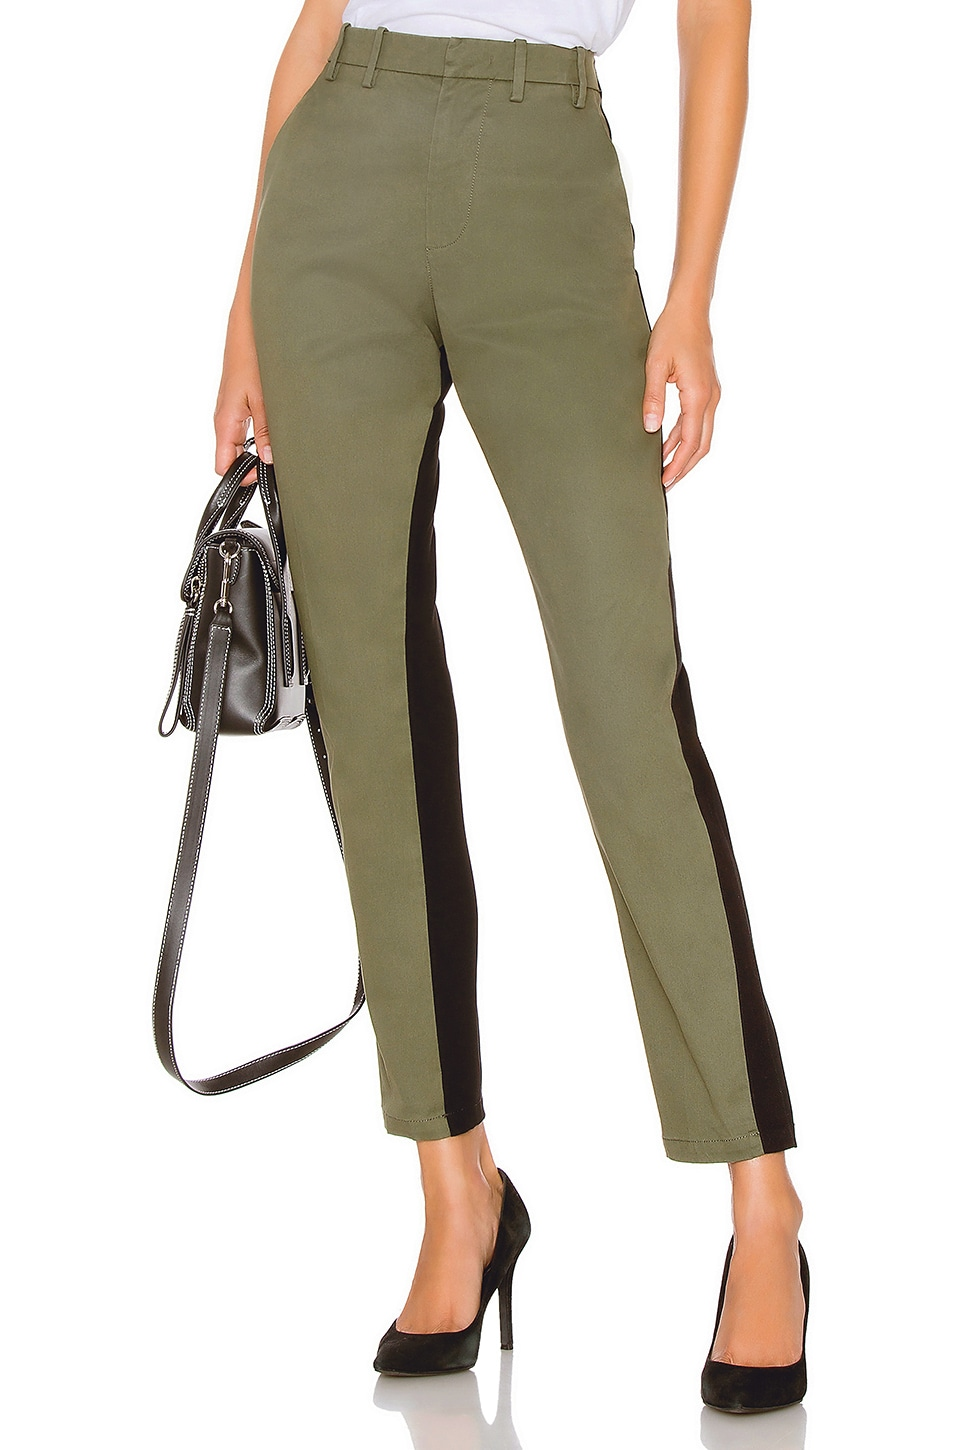 No. 21 Cropped Pant in Salvia